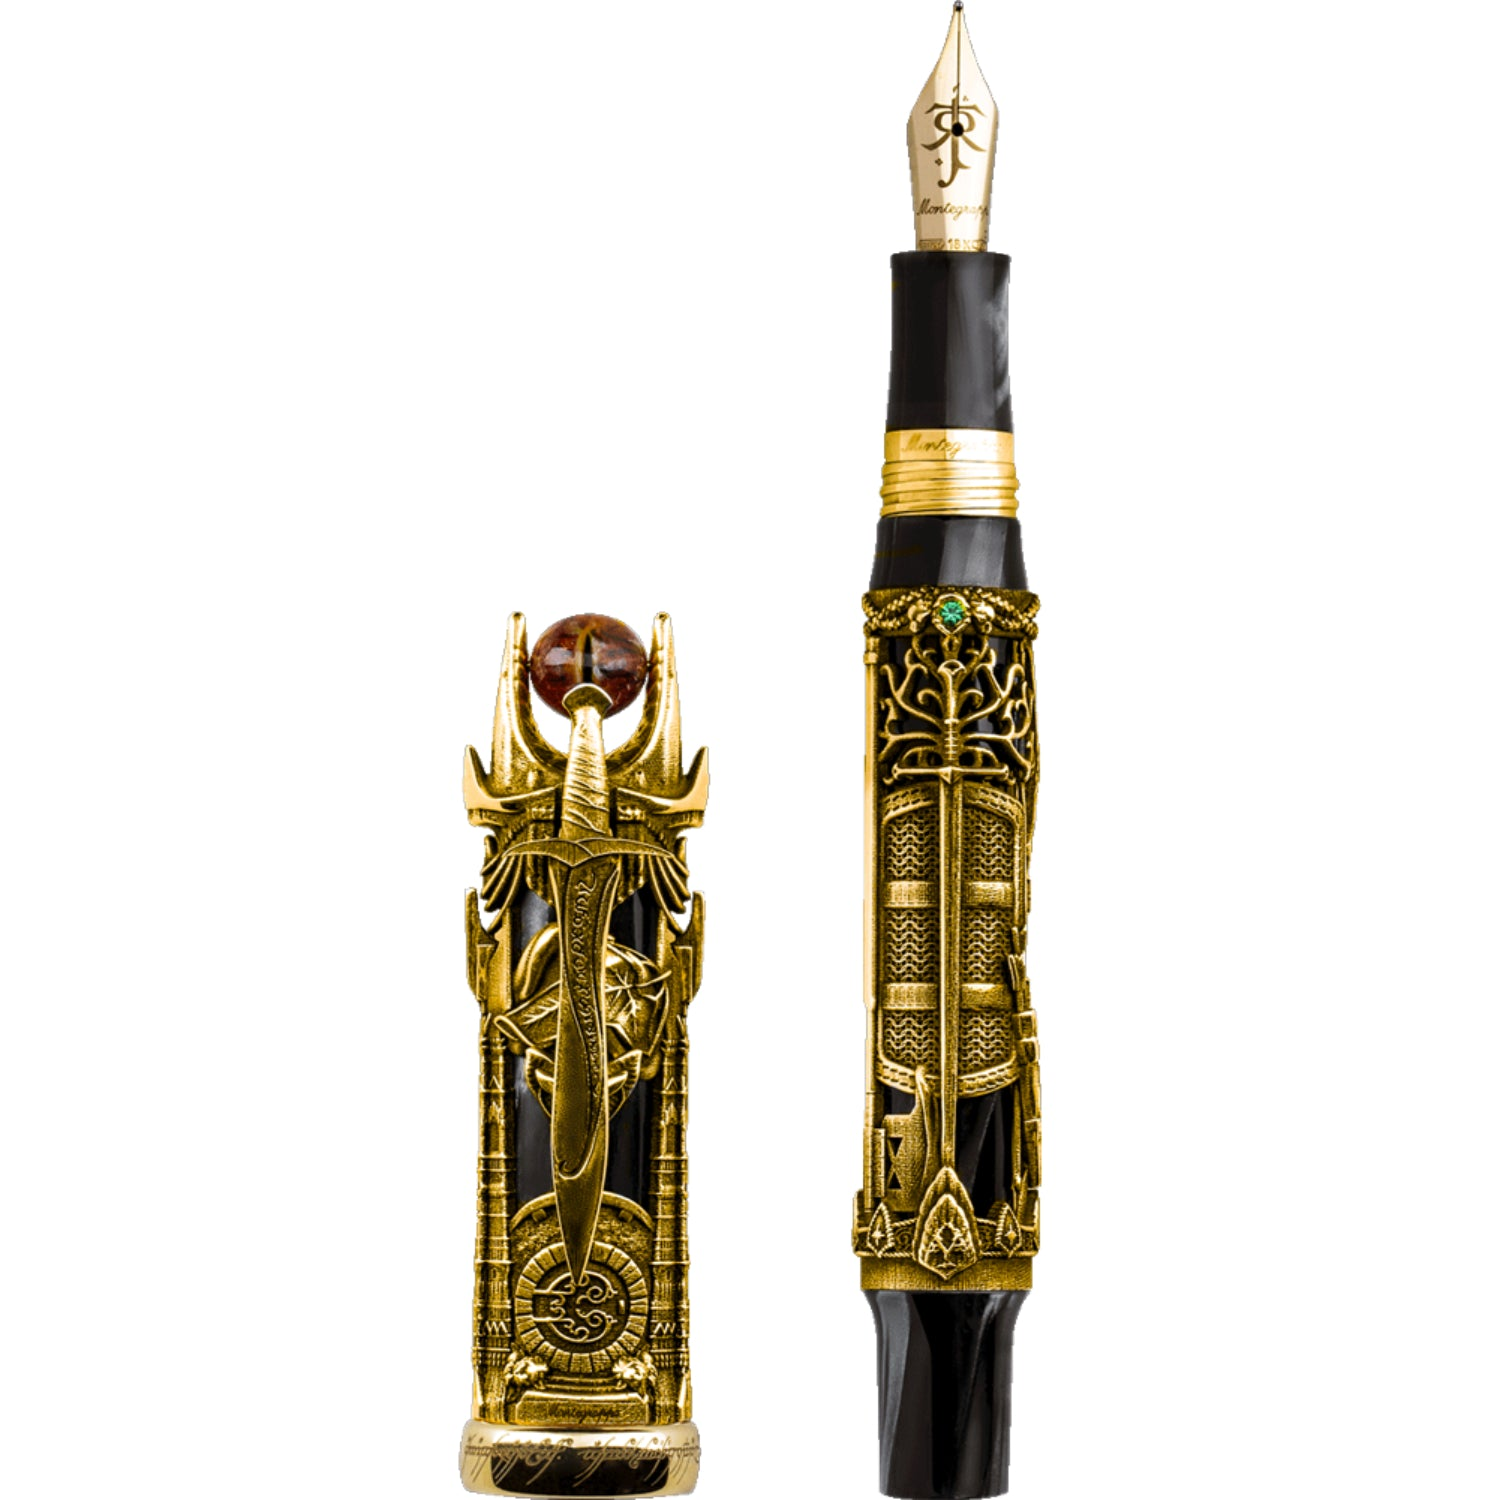 The Lord Of The Rings L.E., Fountain Pen, 18K Gold, Double Broad